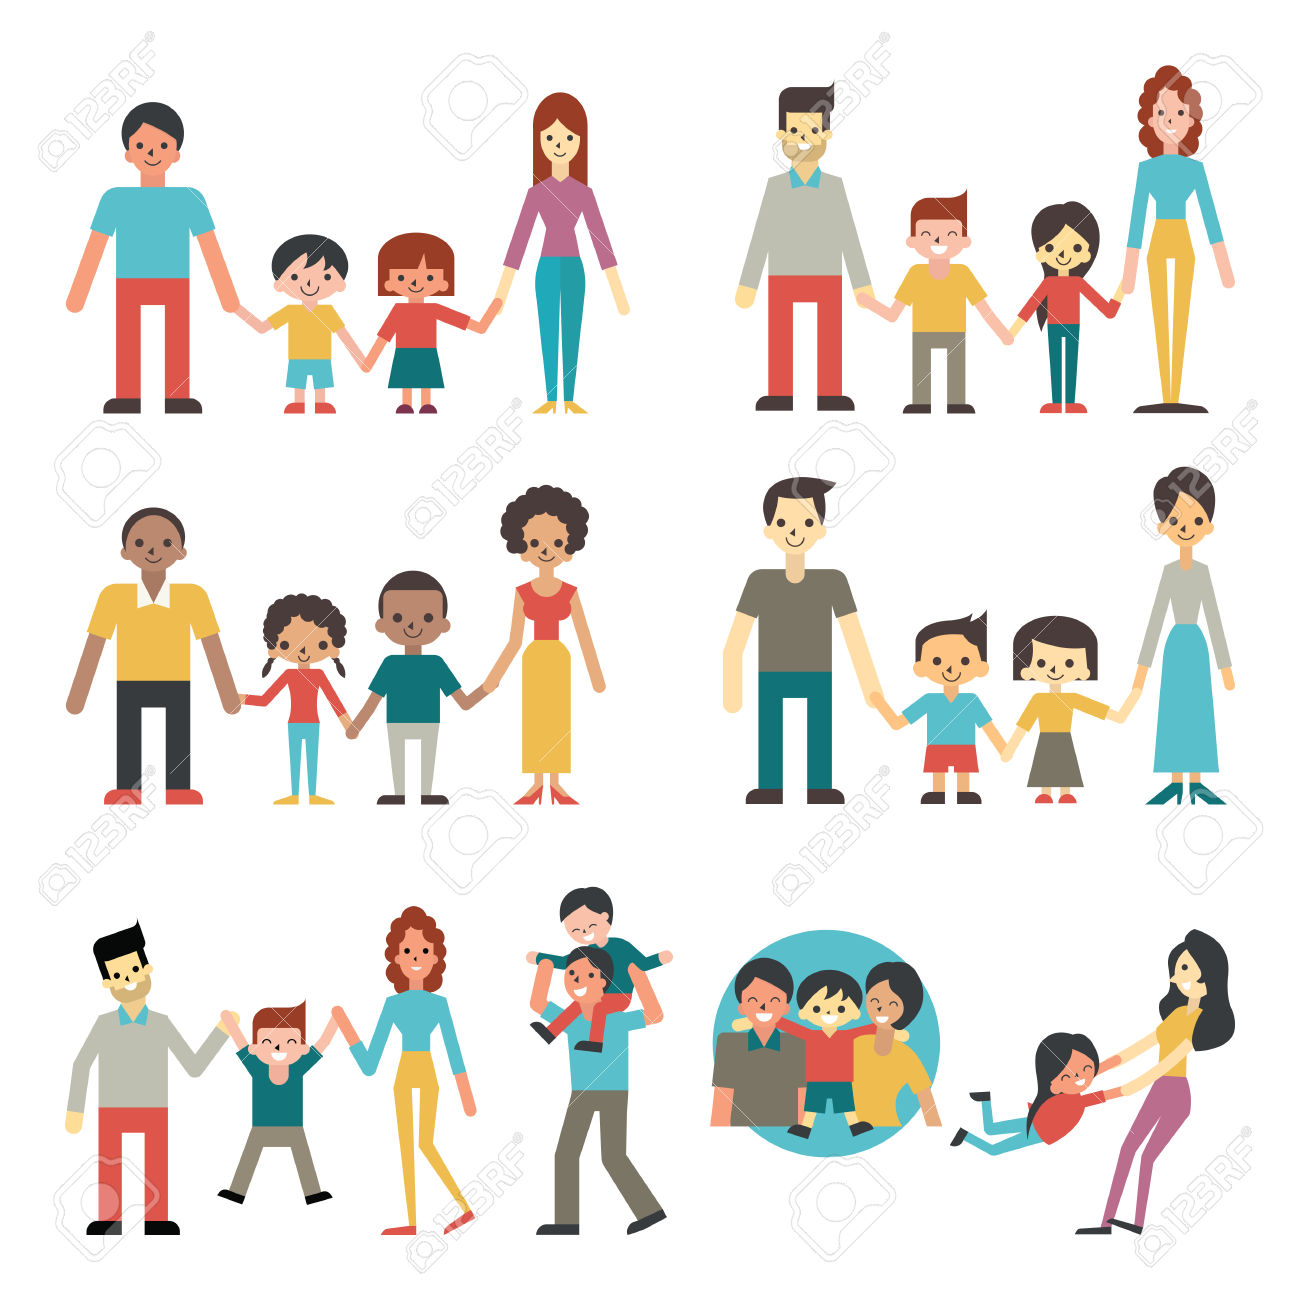 Crowd clipart diverse person. Free download best on